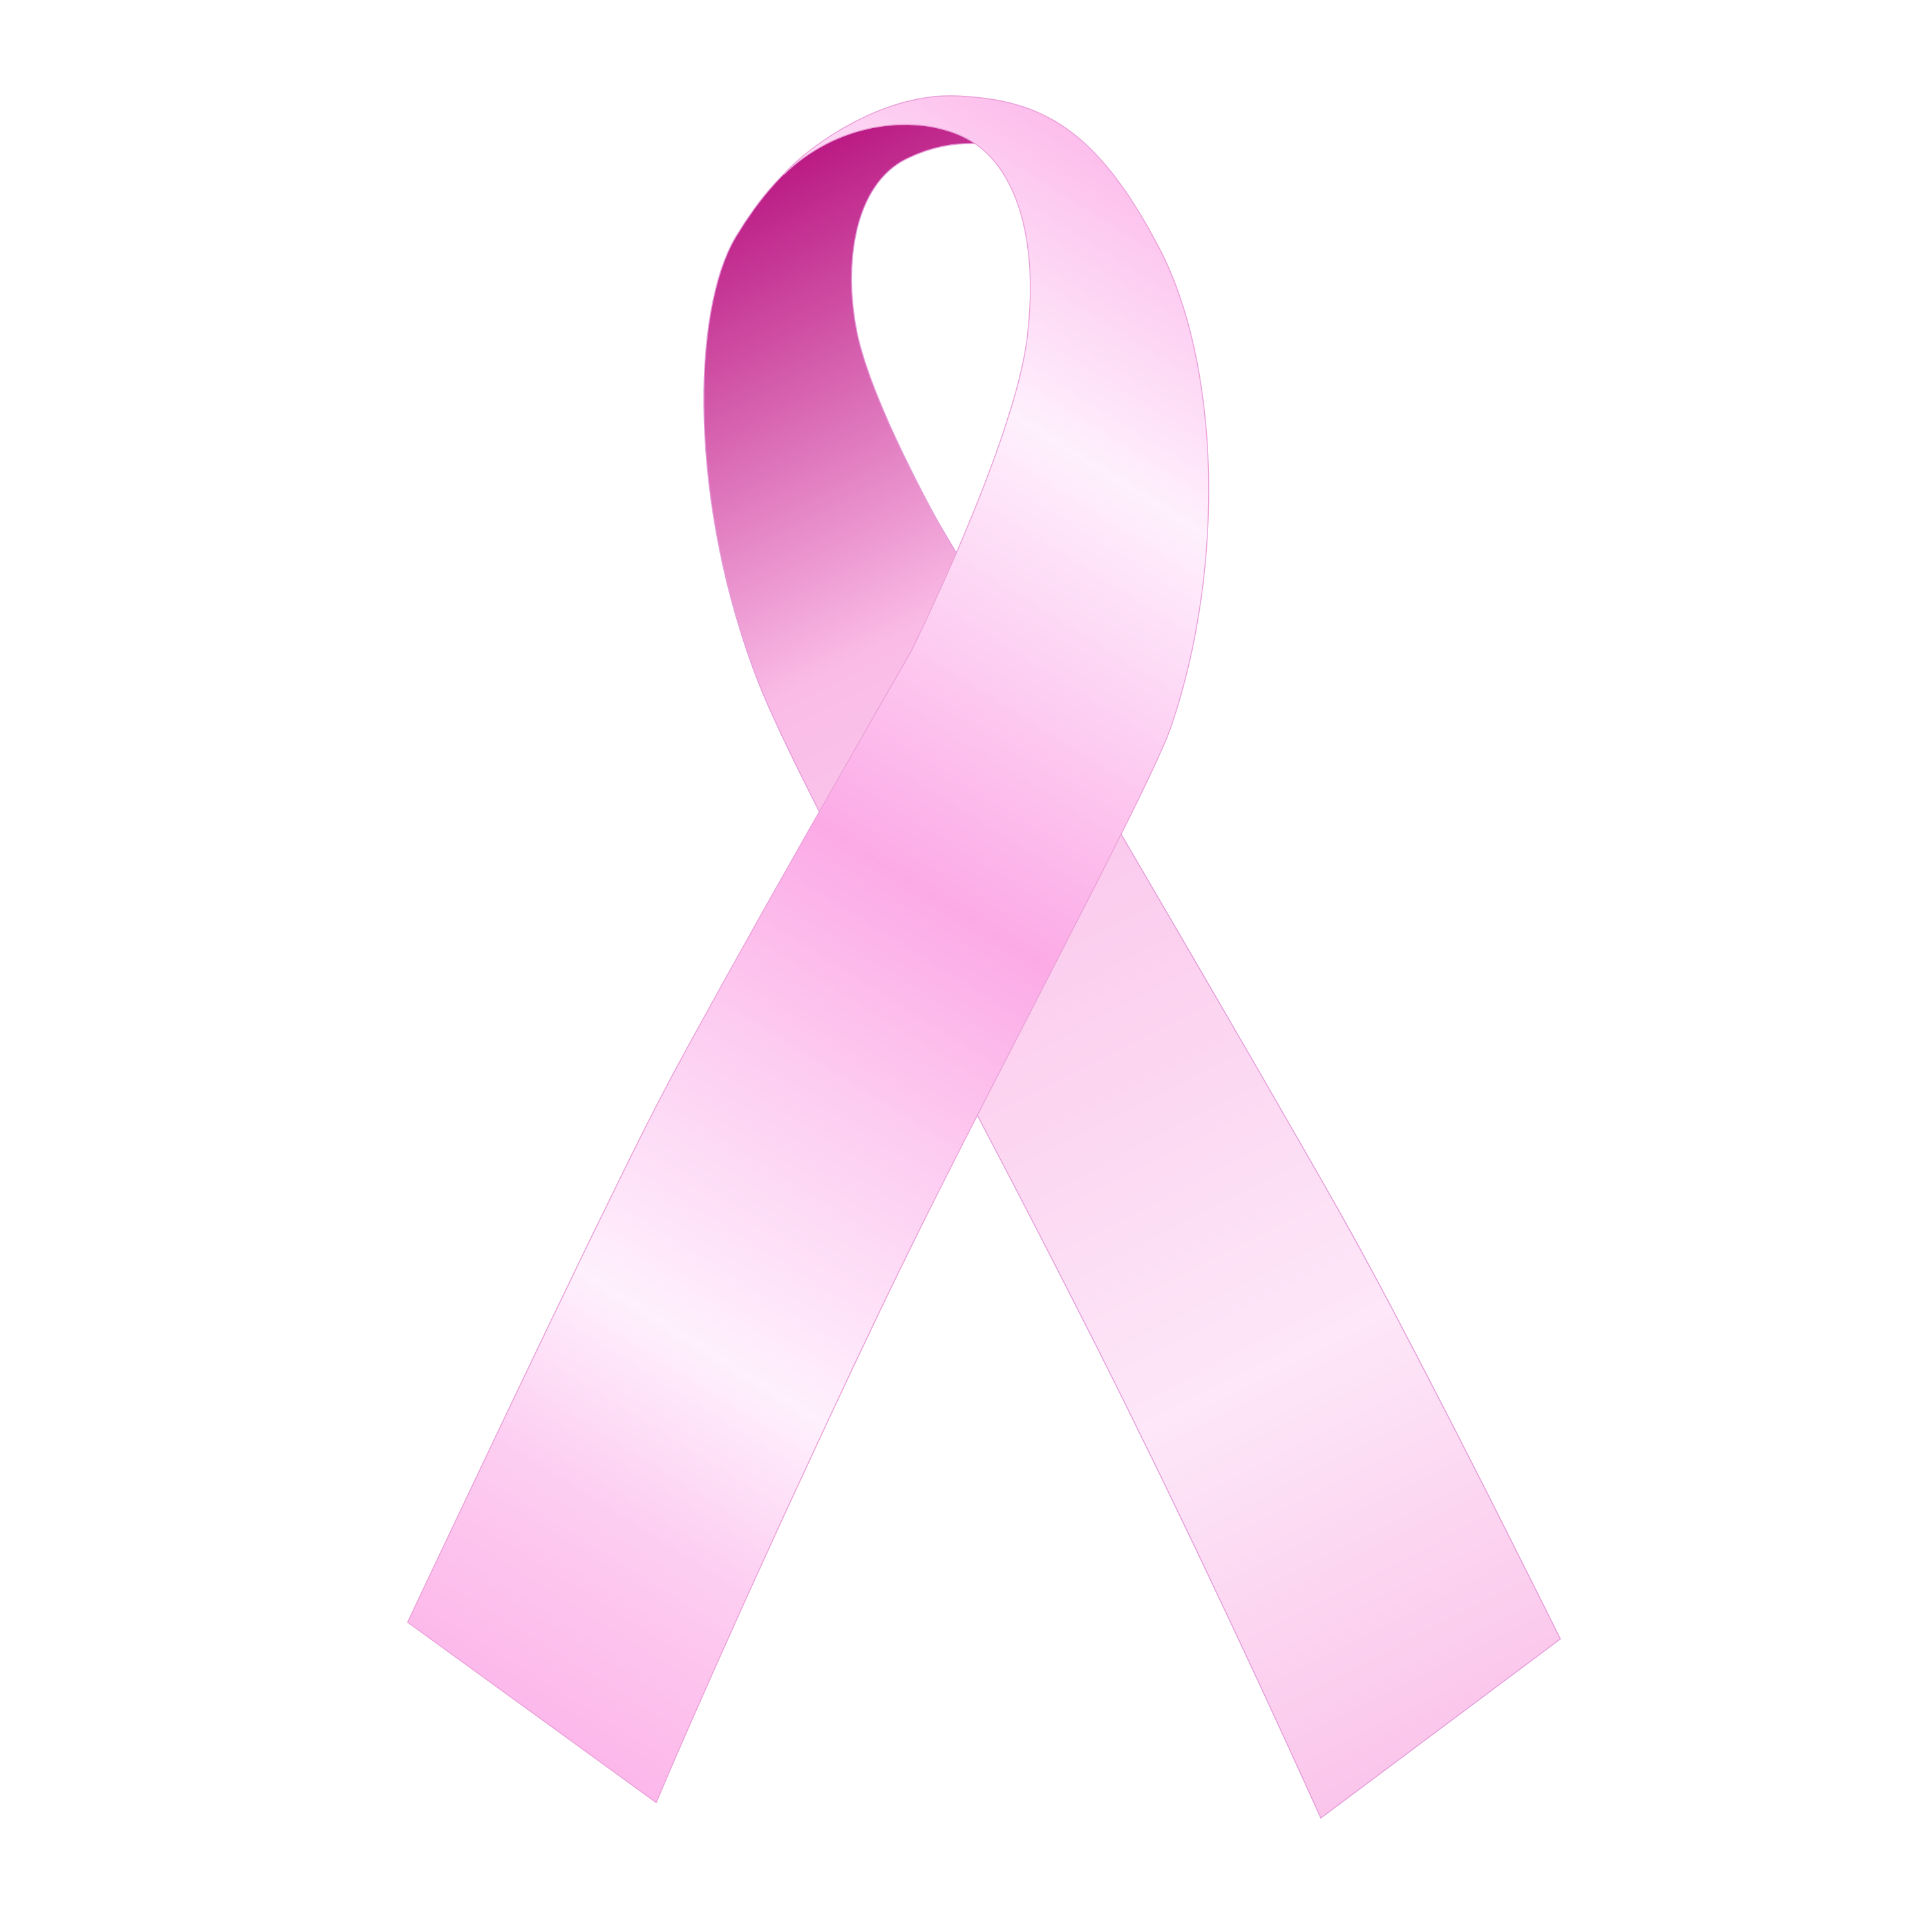 Pink Ribbon Wallpaper - WallpaperSafari